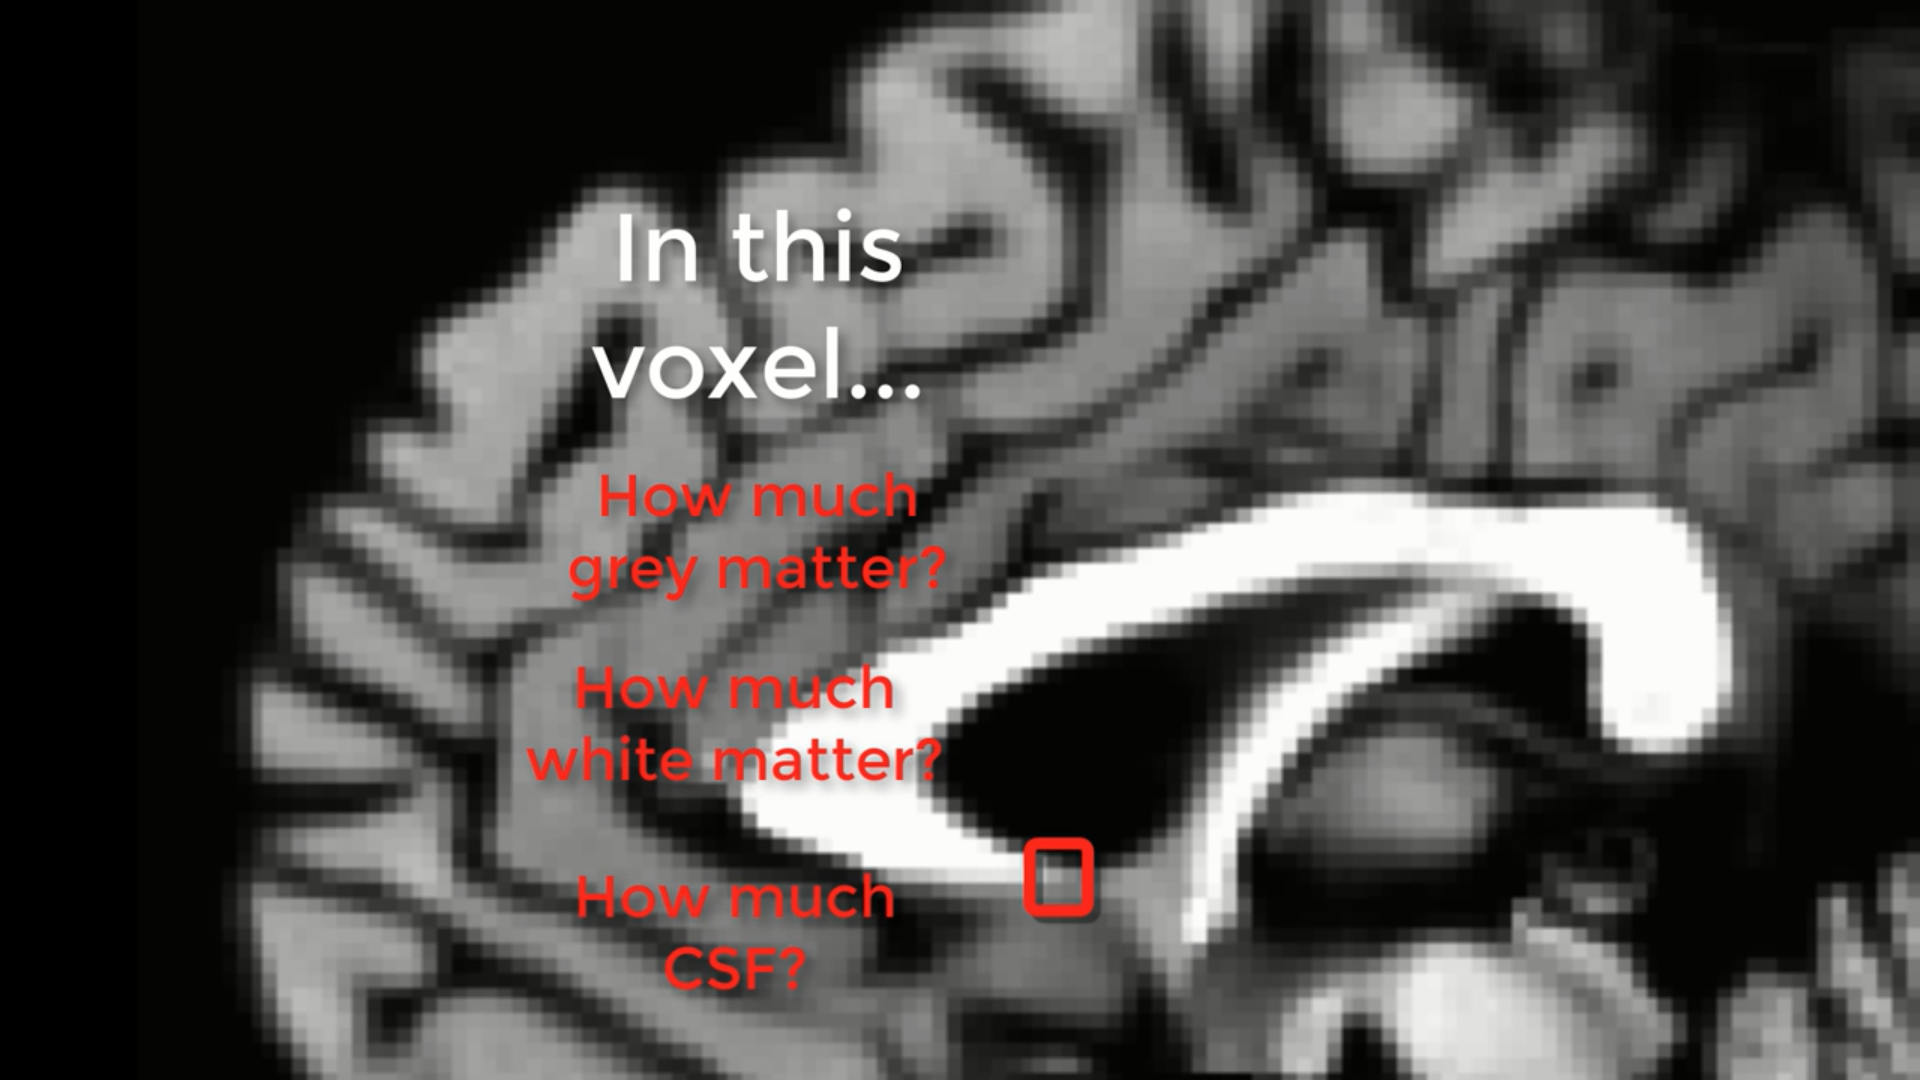 Figure 2: The partial voluming effect in a structural scan. The box highlighted in red represents a voxel that encompasses three different tissue types: White matter, grey matter, and CSF. If you imagine that the greyscale image is a real brain, and our red box is the smallest resolution element of our scan, the red box would be an average of the different tissue types contained within it.